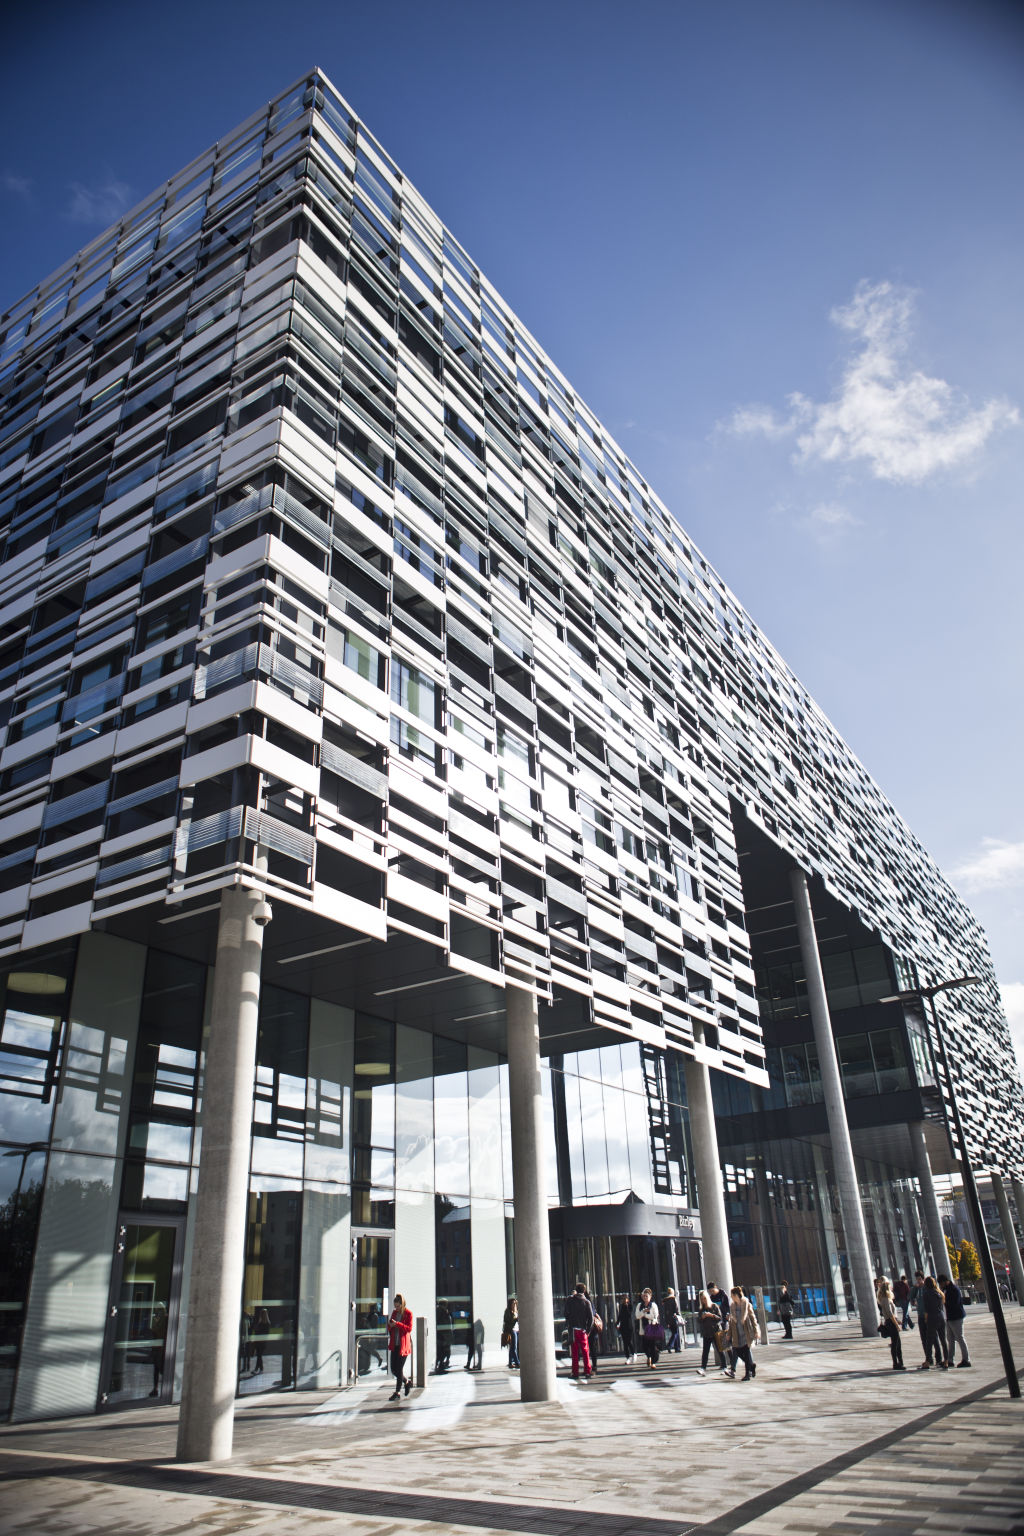 Birley Building – home to the Faculty of Education and the Faculty of Health, Psychology and Social Care